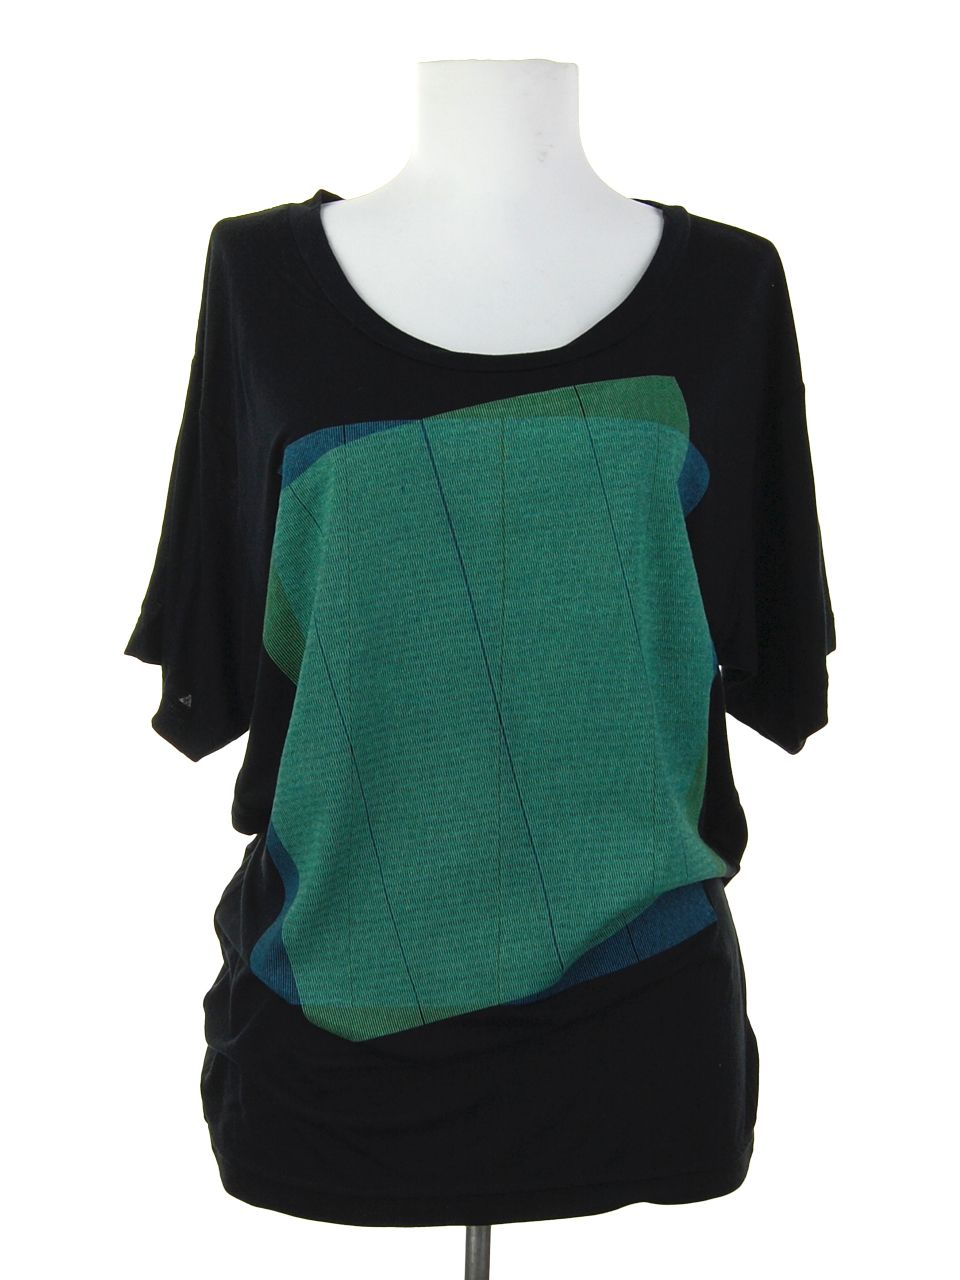 Oversized  and casual slouchy tee from Super Maggie.